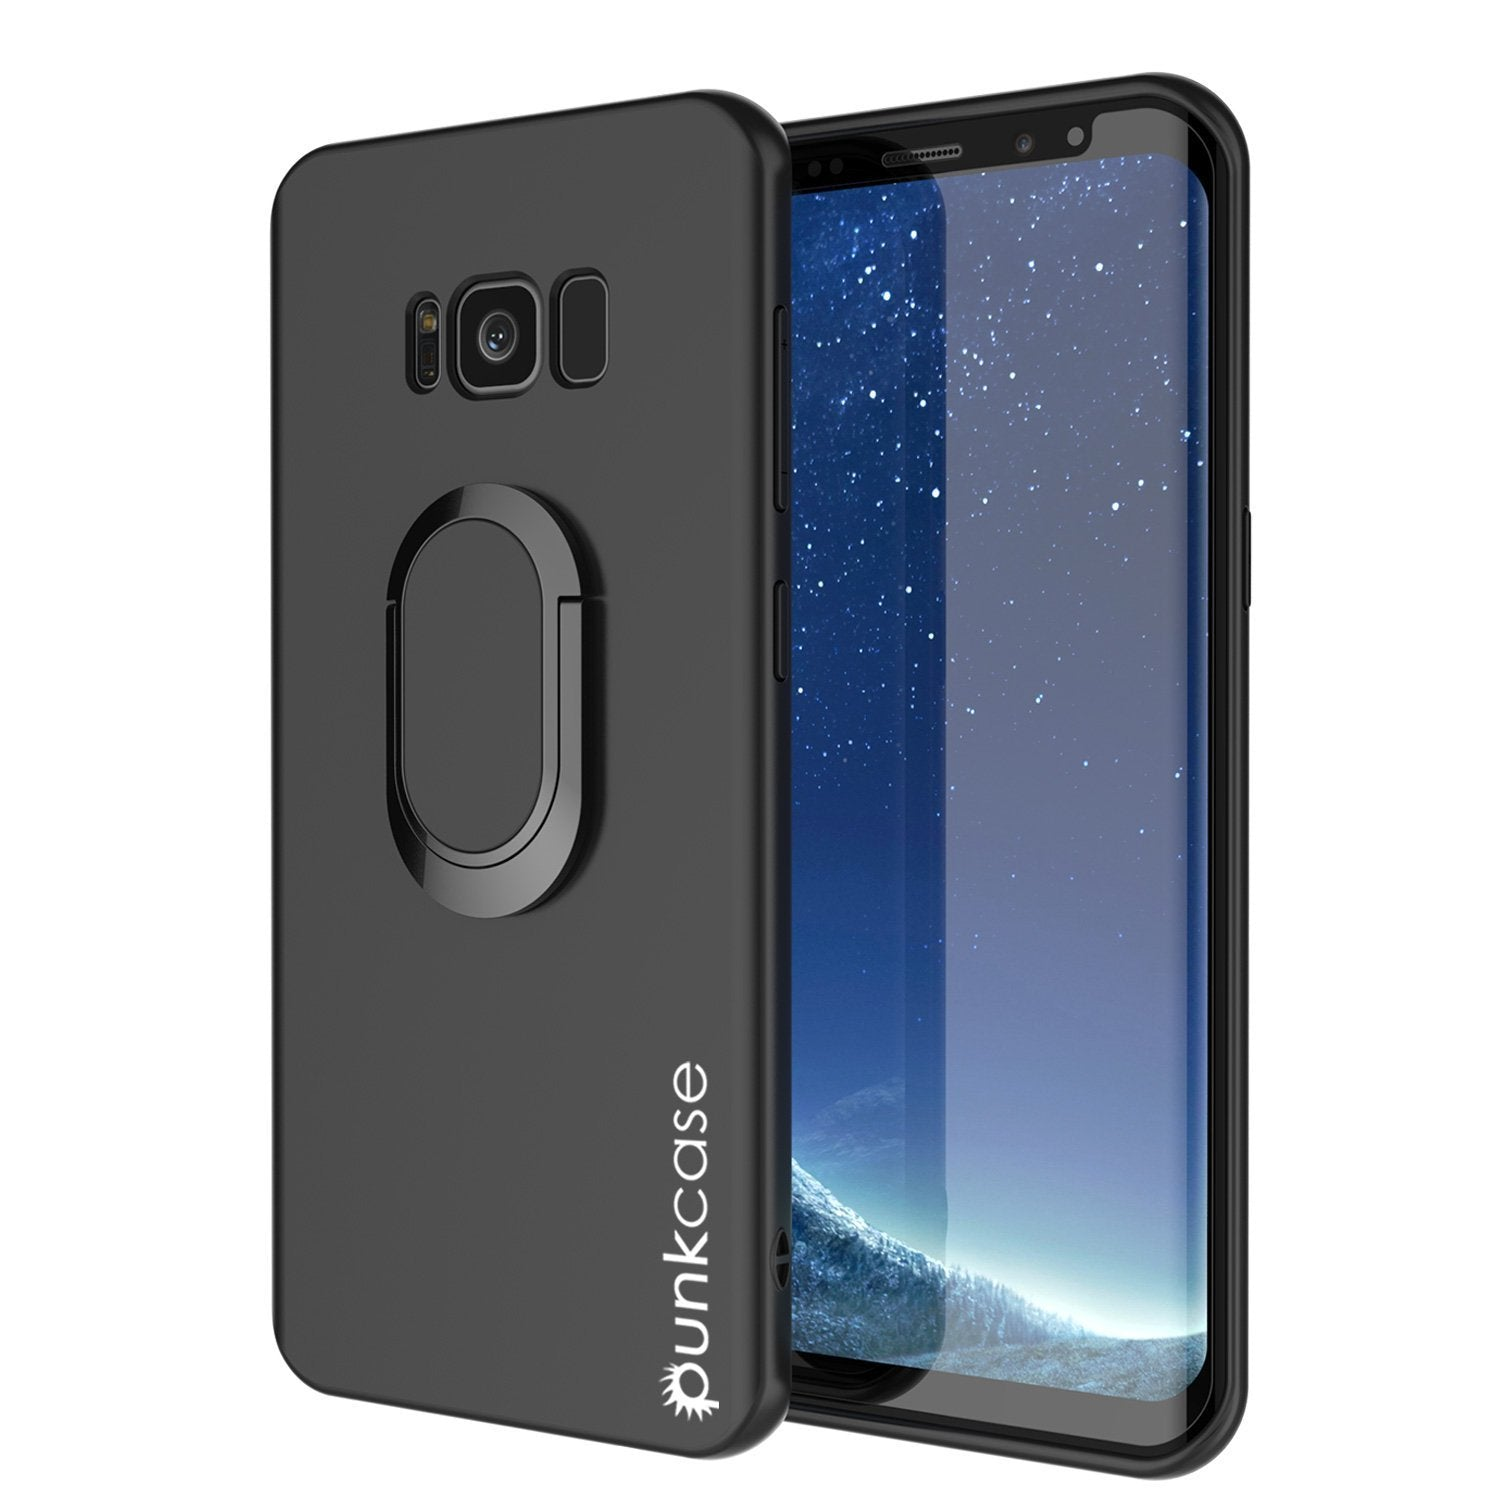 Galaxy S8 PLUS, Punkcase Magnetix Protective TPU Cover W/ Kickstand, Screen Protector [Black]